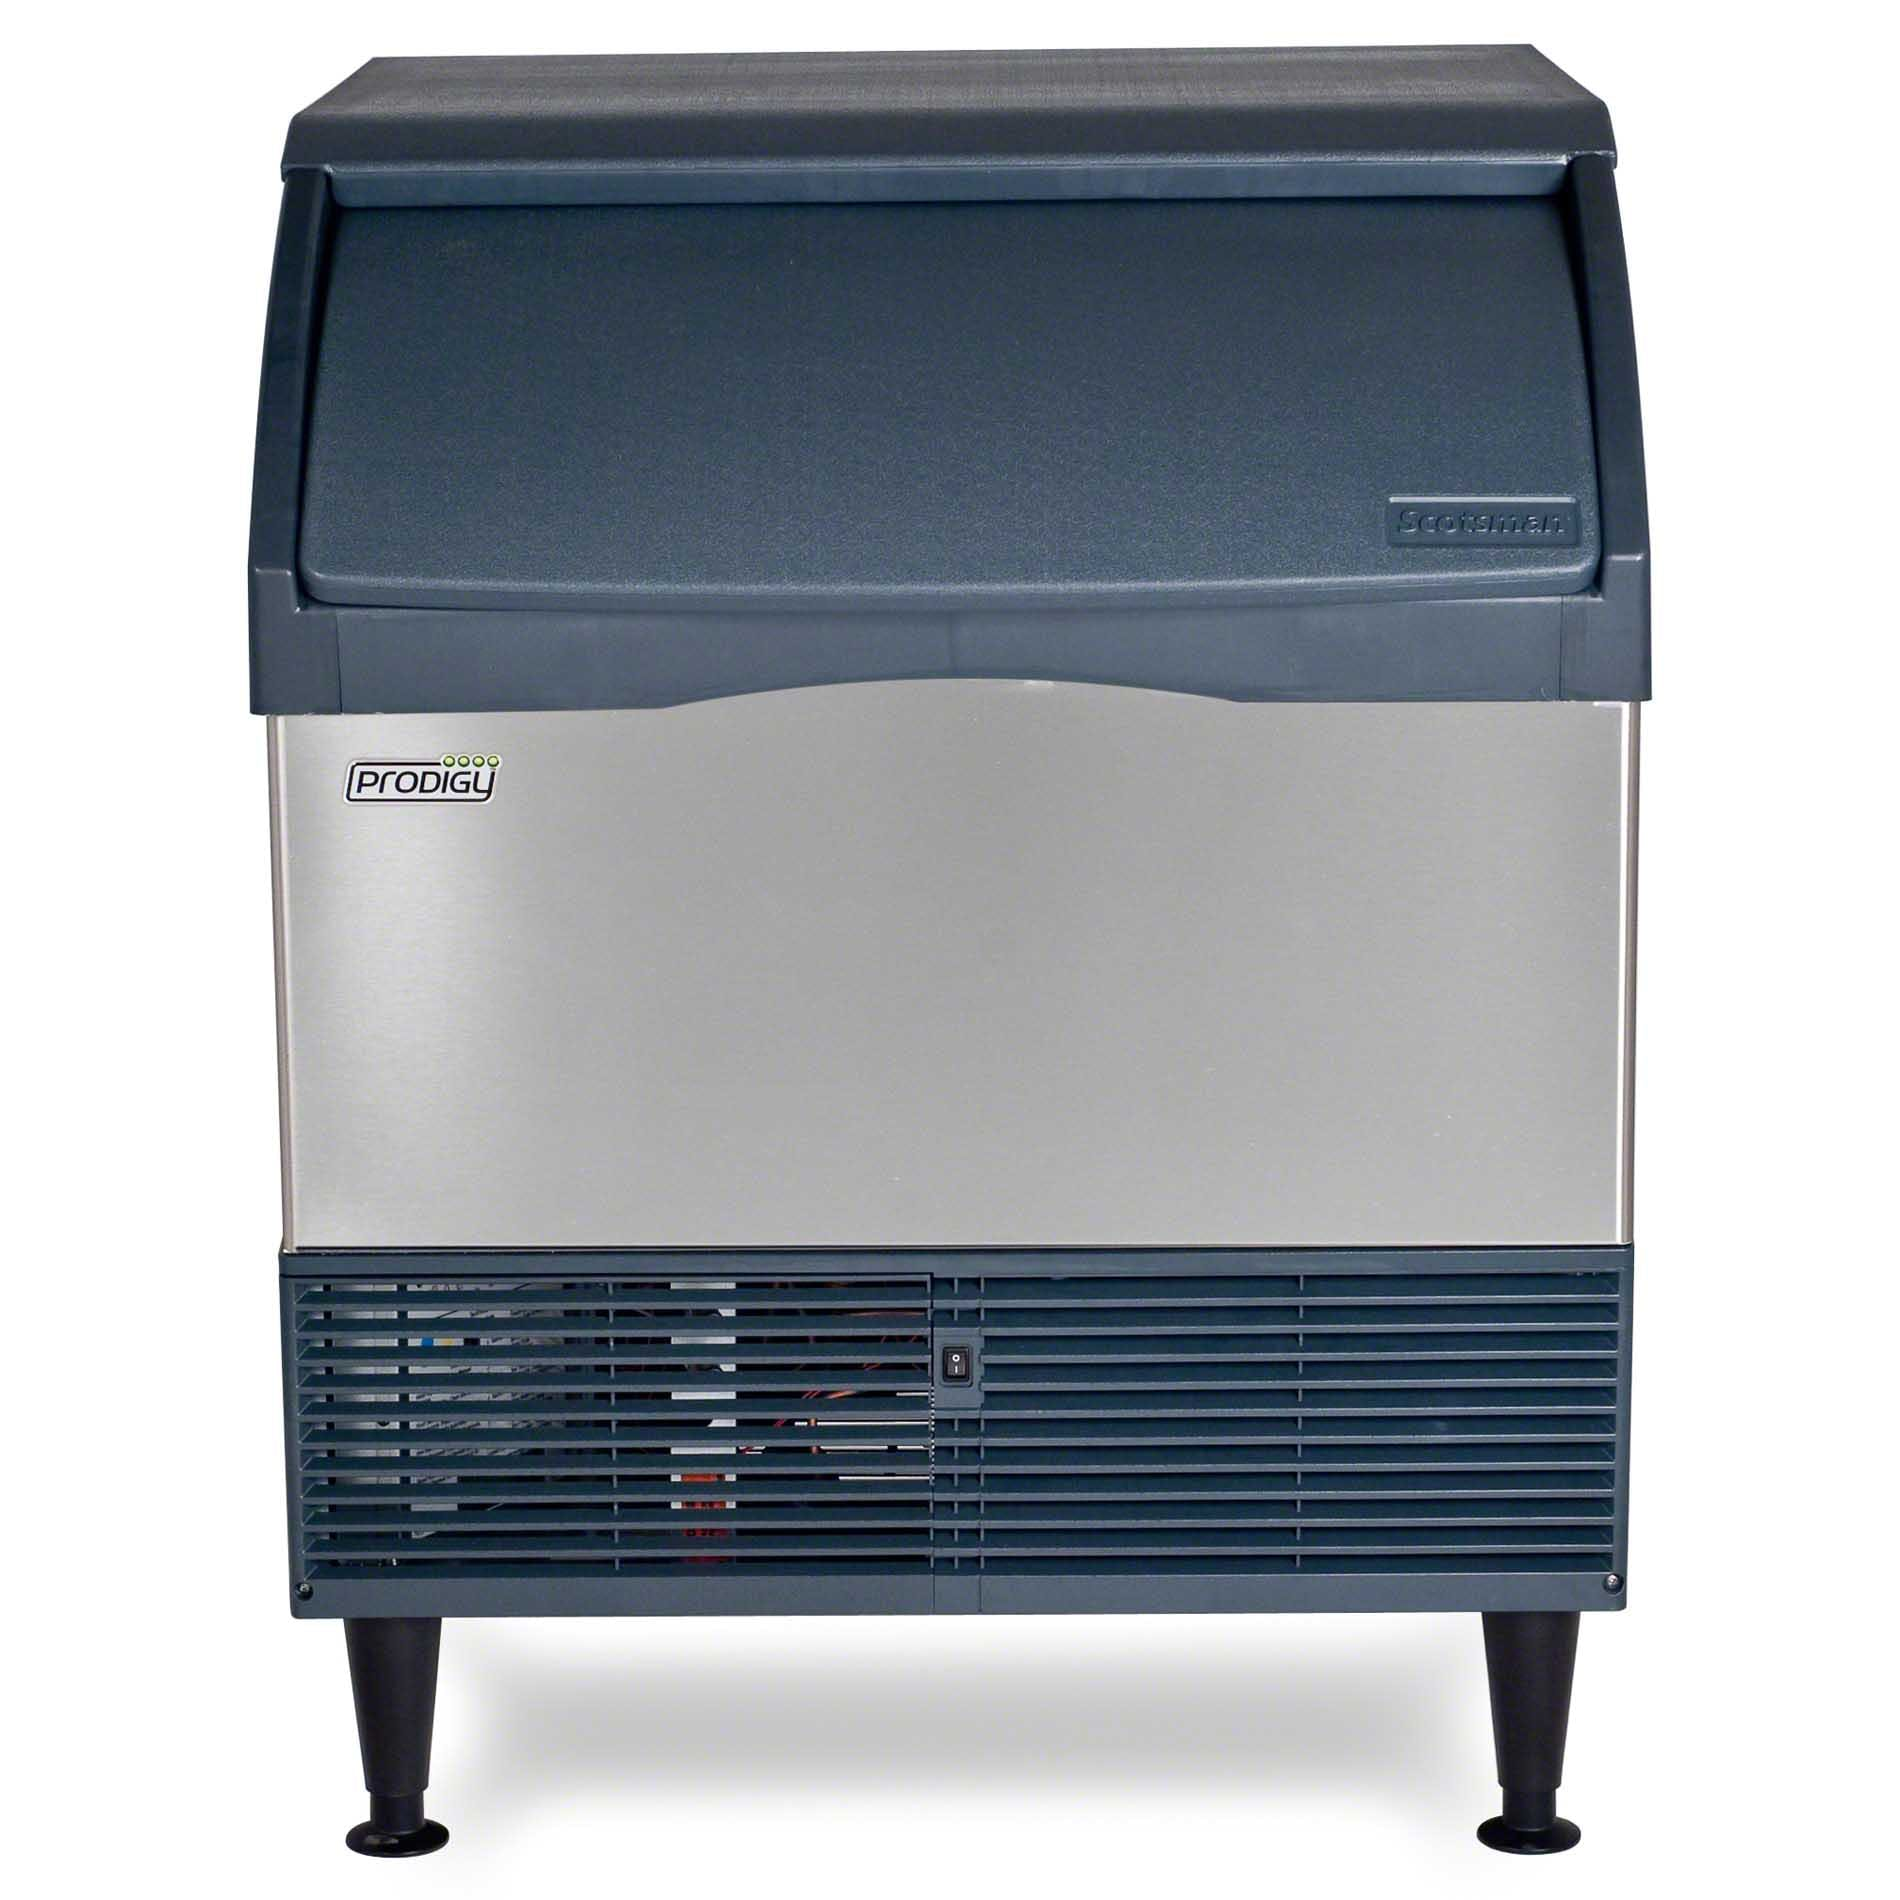 Scotsman - CU3030SA-1A 250 lb Self-Contained Cube Ice Machine - Prodigy® Series Ice machine sold by Food Service Warehouse